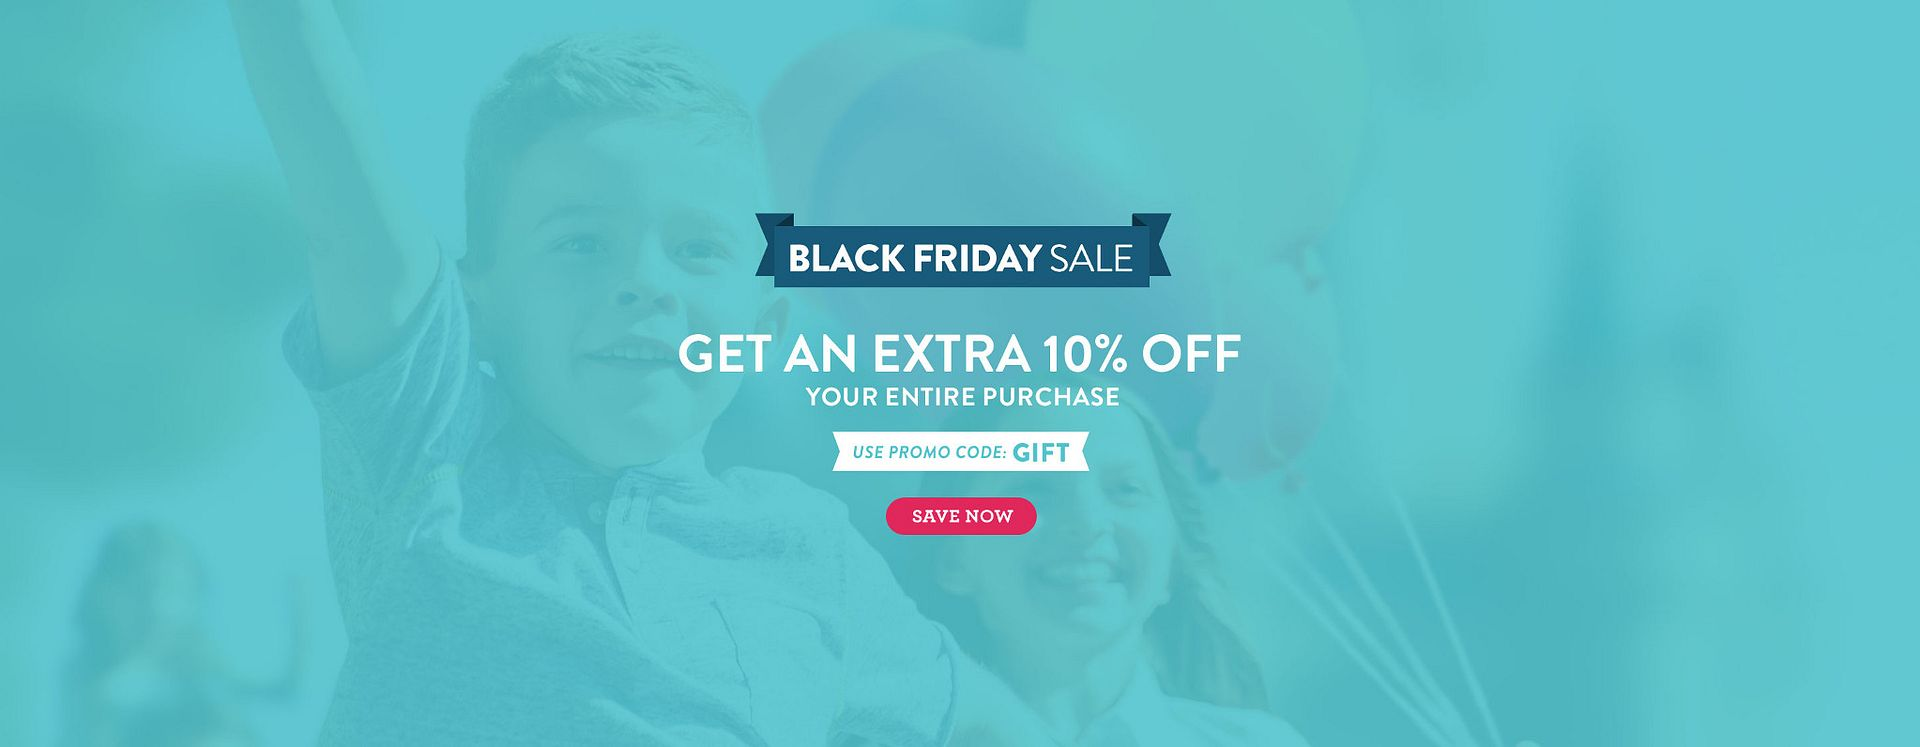 Black Friday Sale, get an extra 10 percent off your entire purchase! Use Promo Code GIFT